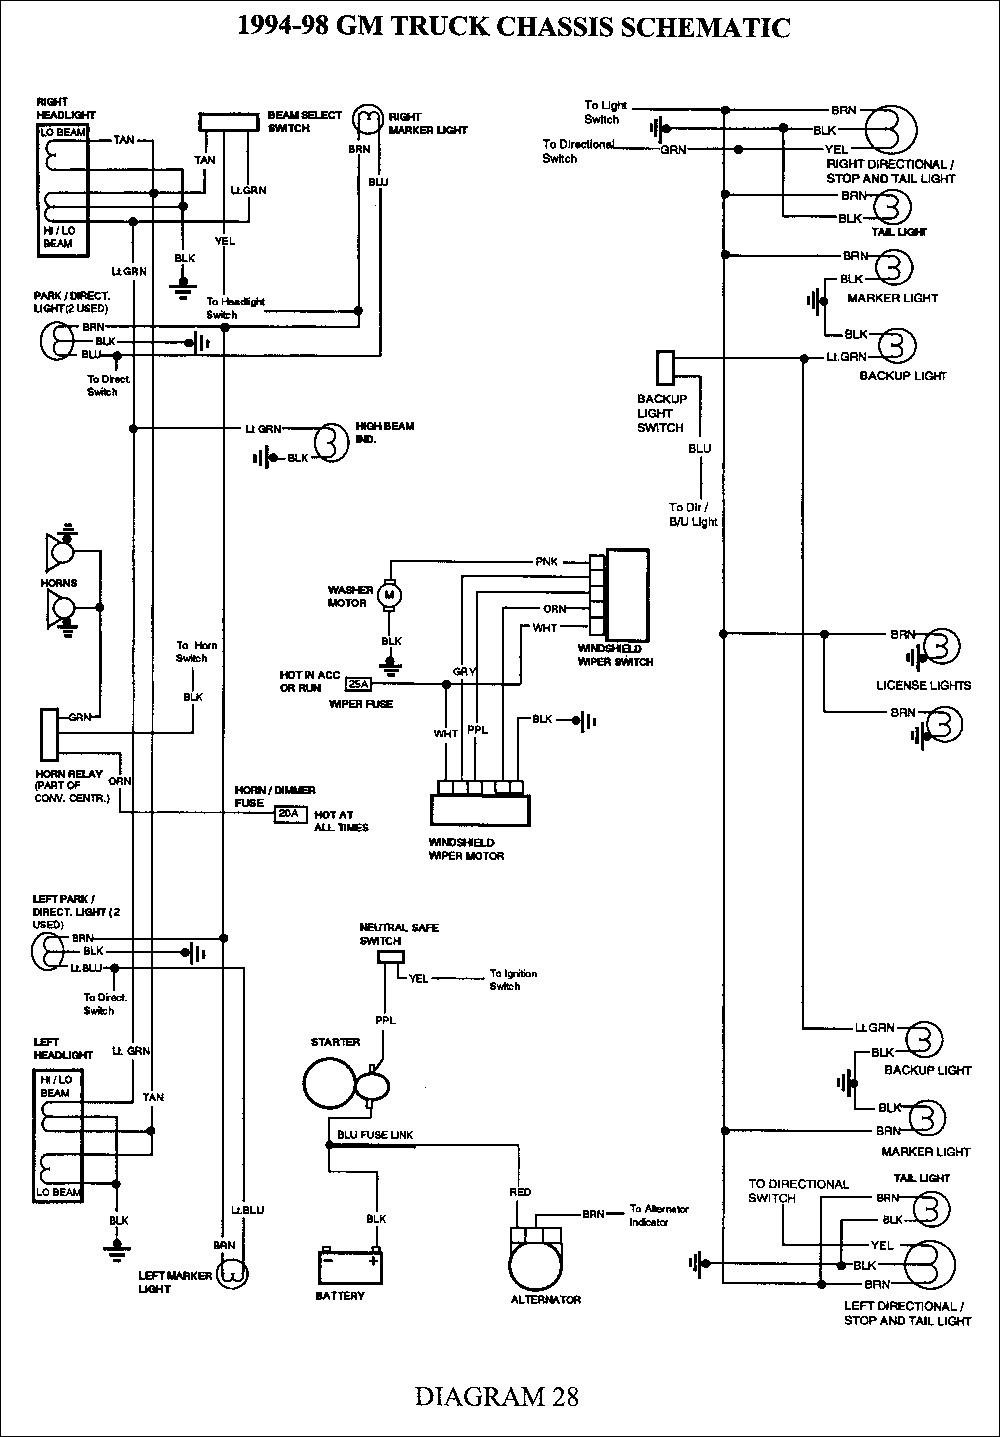 2000 Ford F650 Headlight Wiring Diagram Access Upfitter Switch Wiring